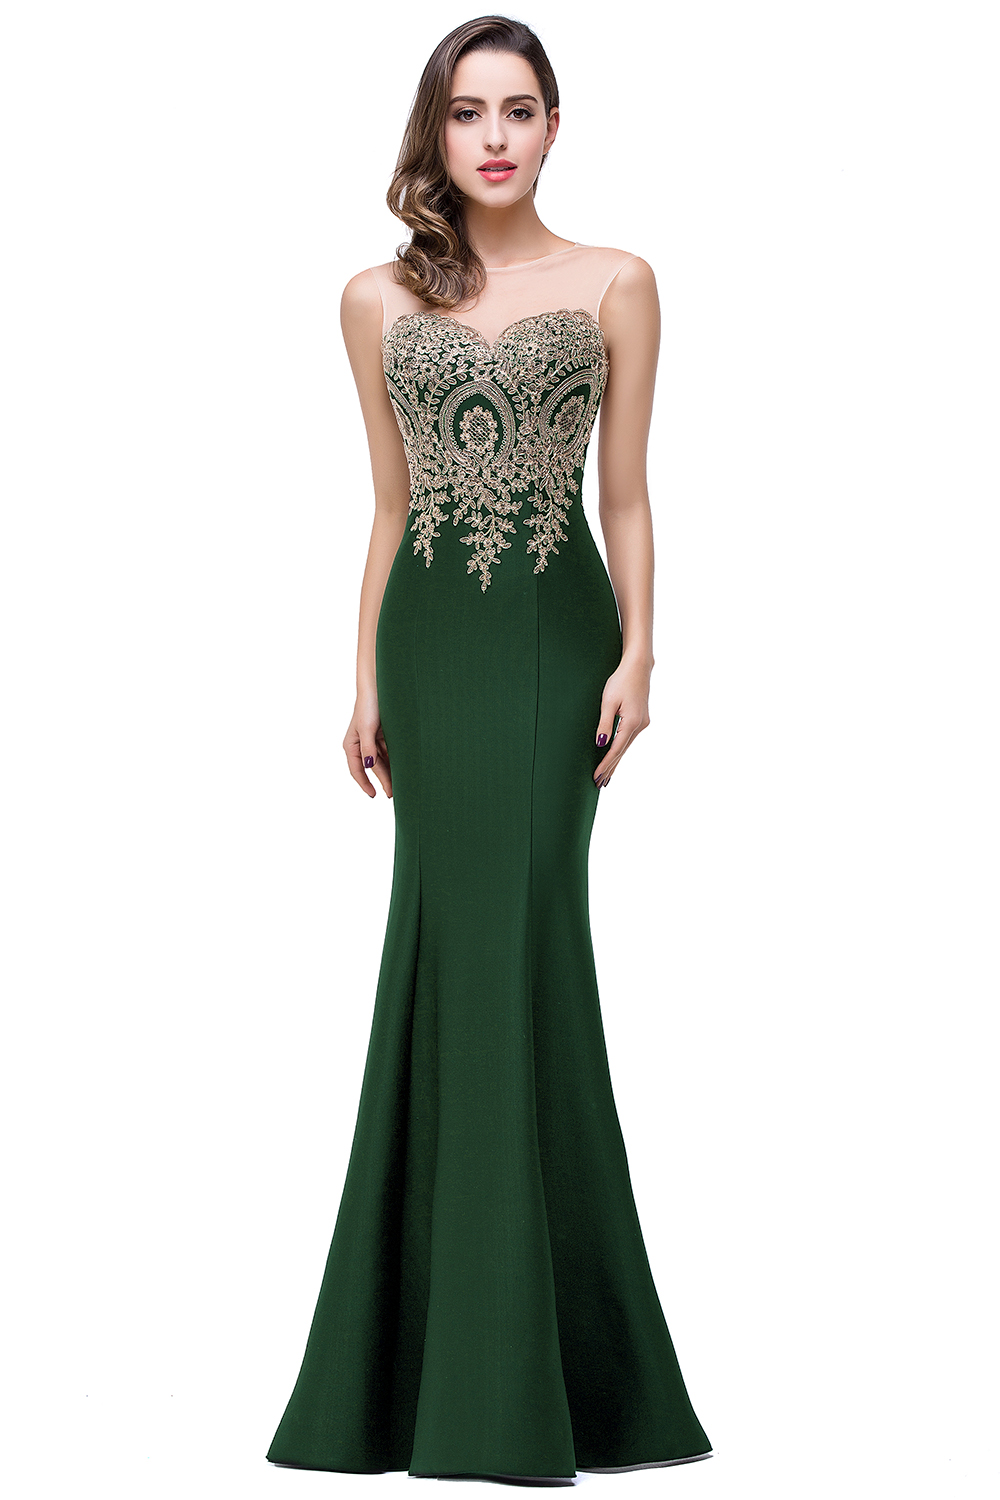 Elegant Appliques Lace Long Mermaid Bridesmaid Dress